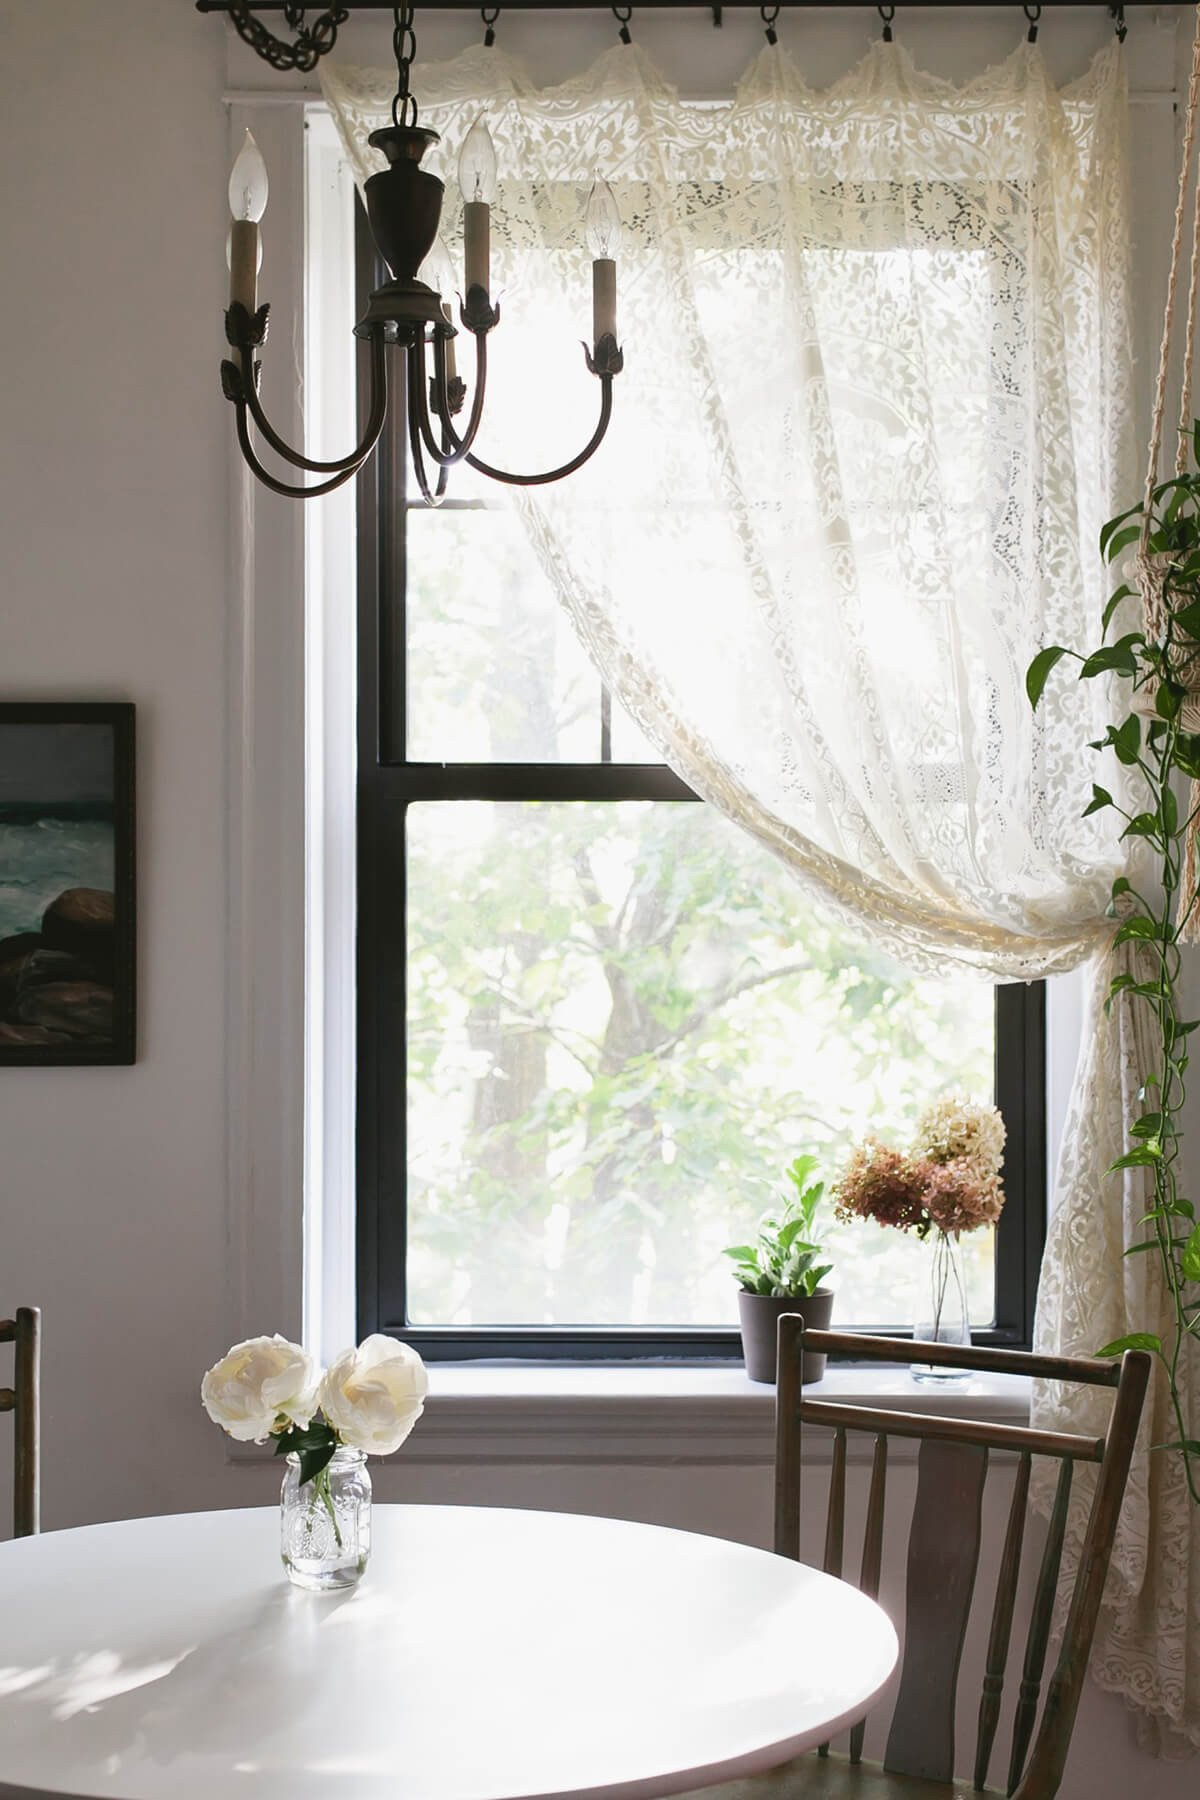 Farmhouse Living Room Curtains Decor Ideas Elegant 26 Best Farmhouse Window Treatment Ideas and Designs for 2019